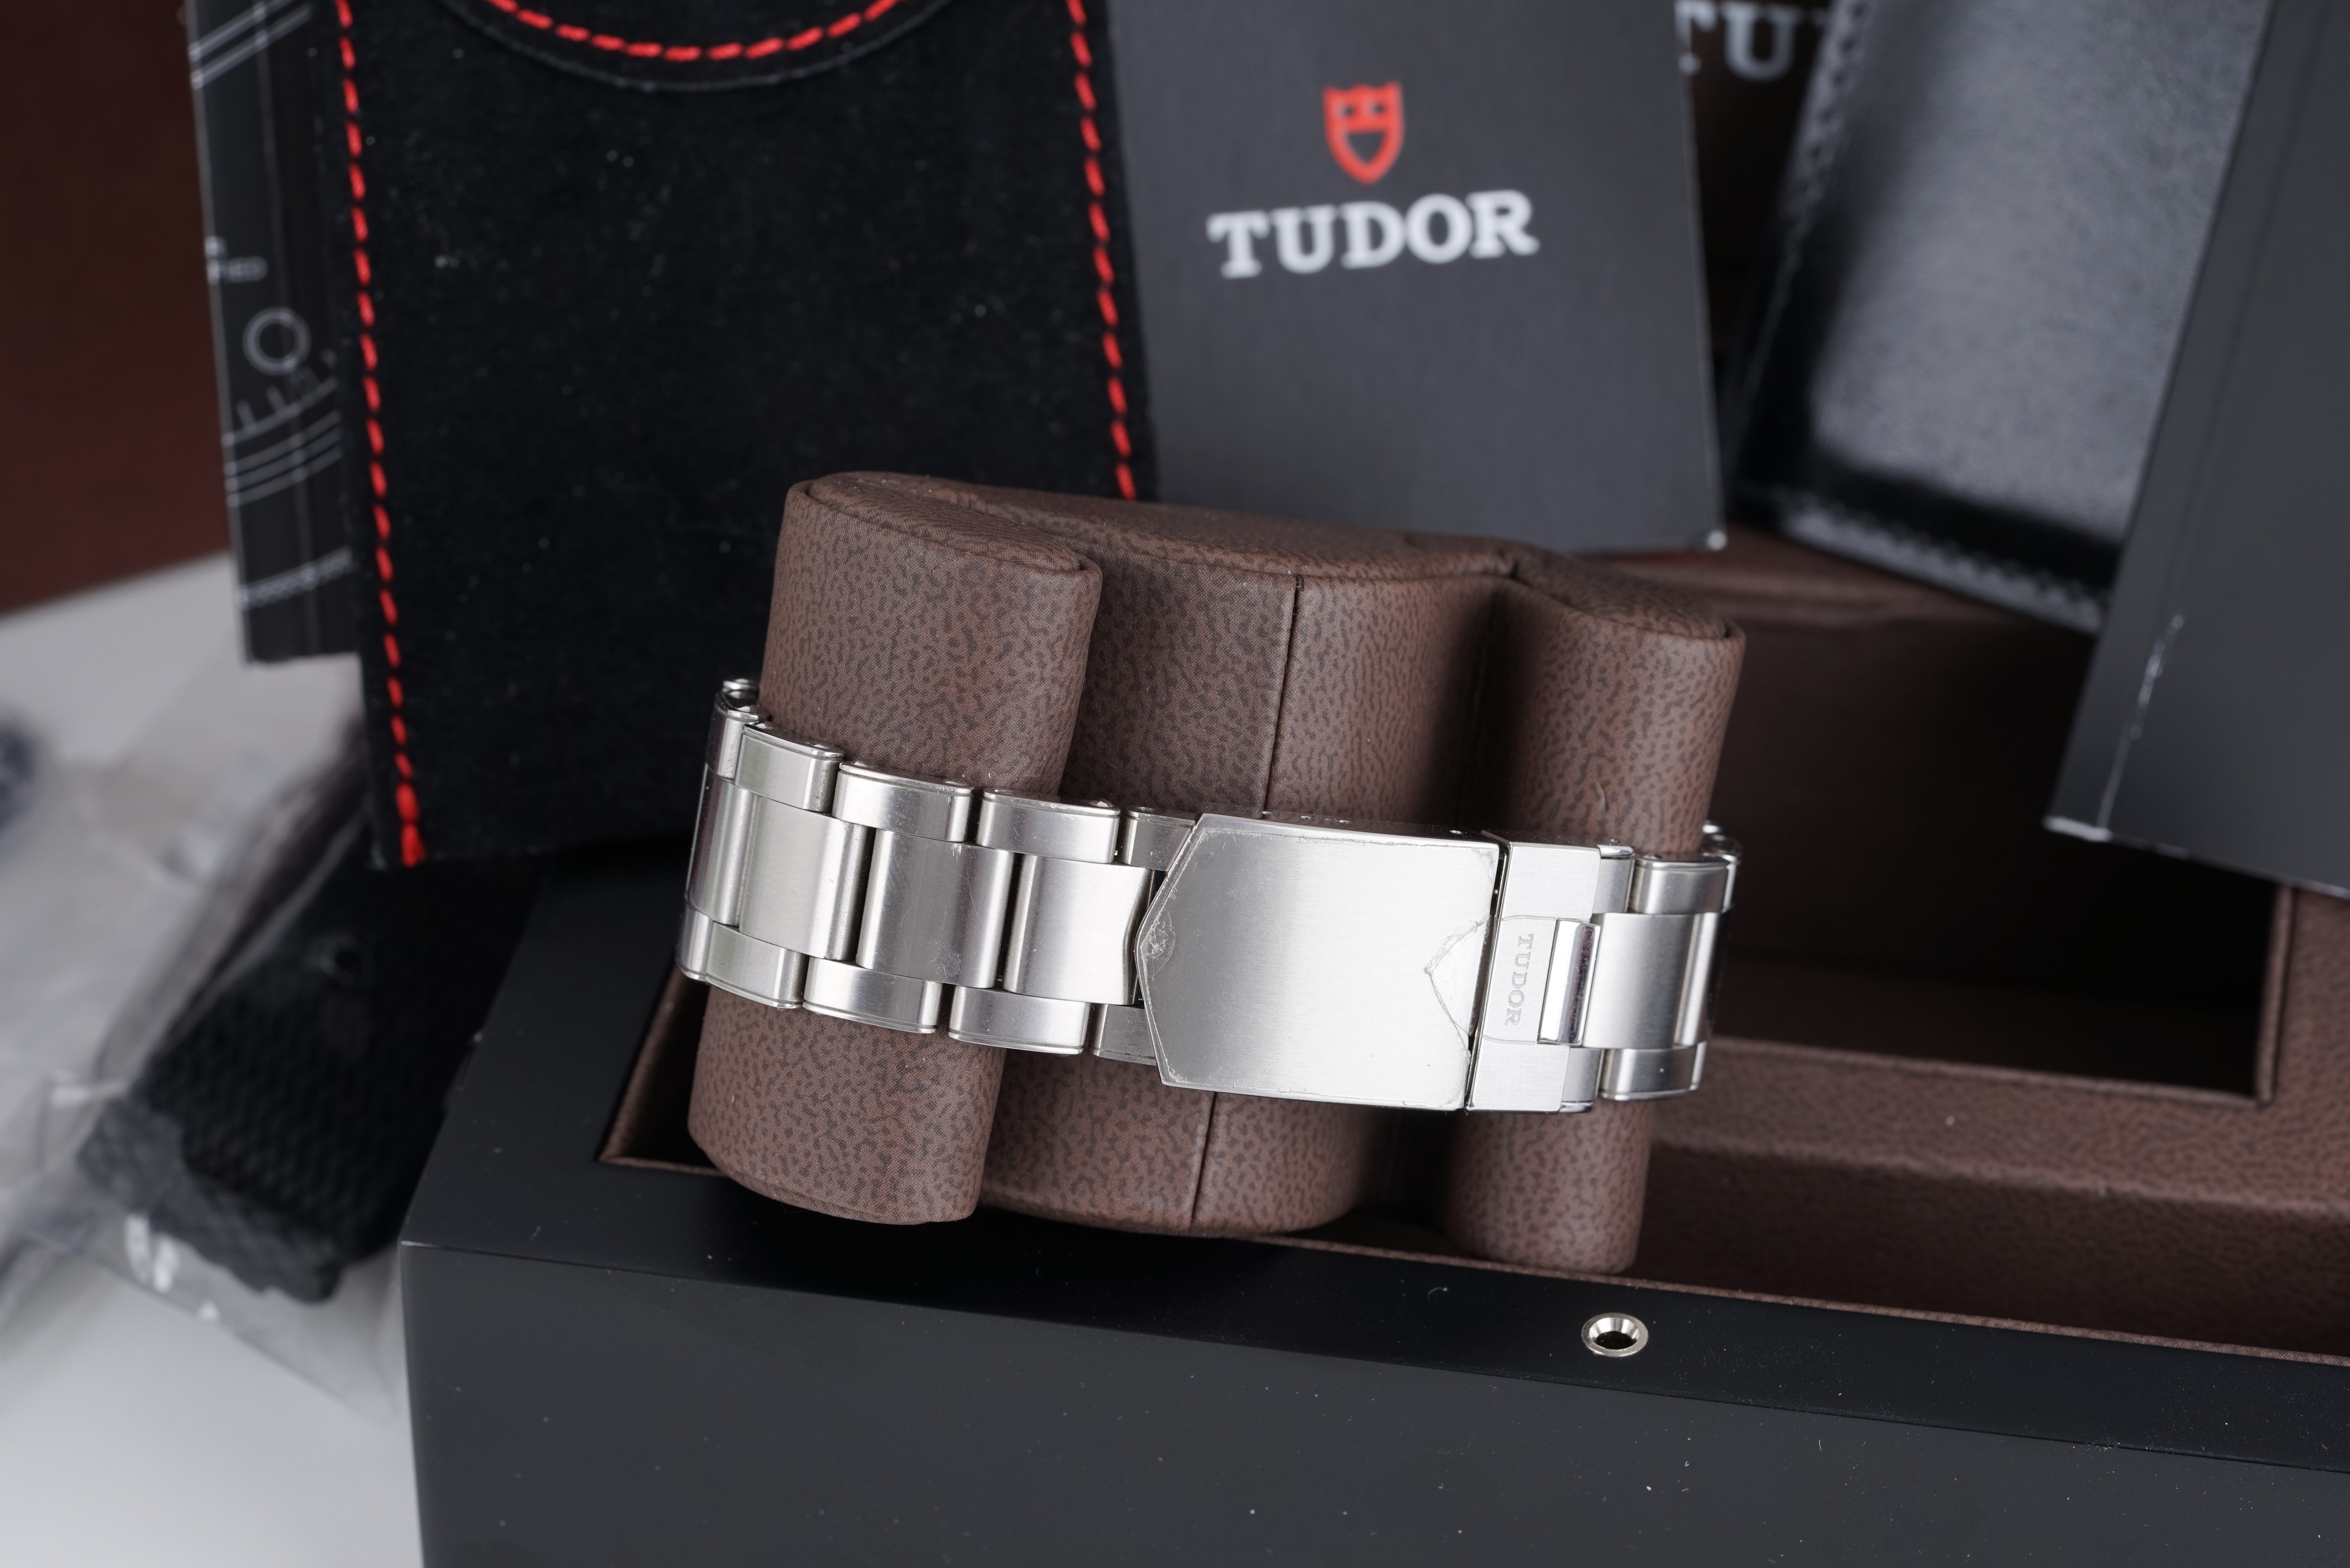 GENTLEMENS TUDOR HERITAGE BLACK BAY WRISTWATCH W/ BOX BOOKLETS & PARTS, circular black dial with dot - Image 4 of 4